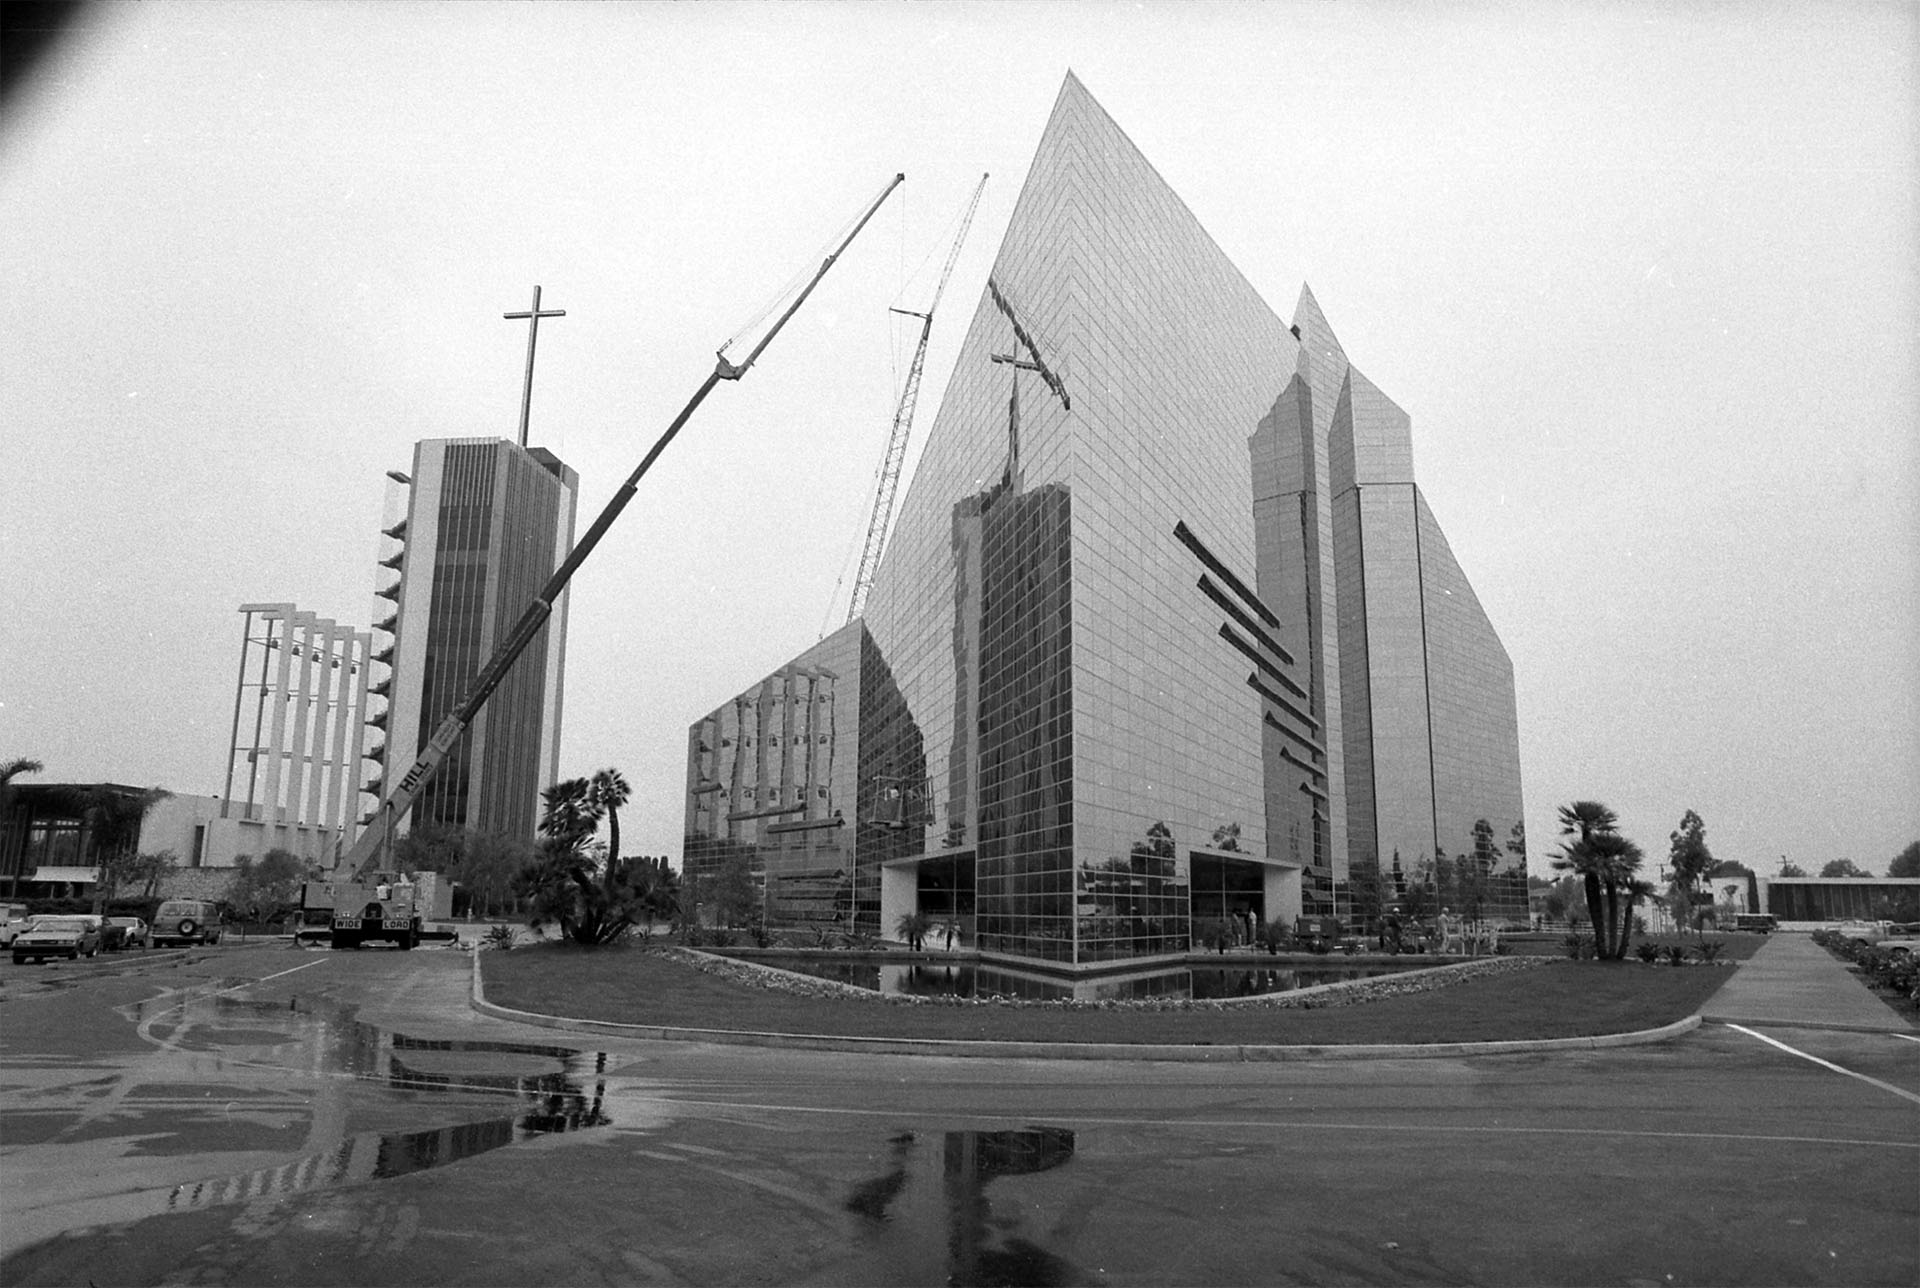 Exterior of Crystal Cathedral in Garden Grove, Calif., 1980